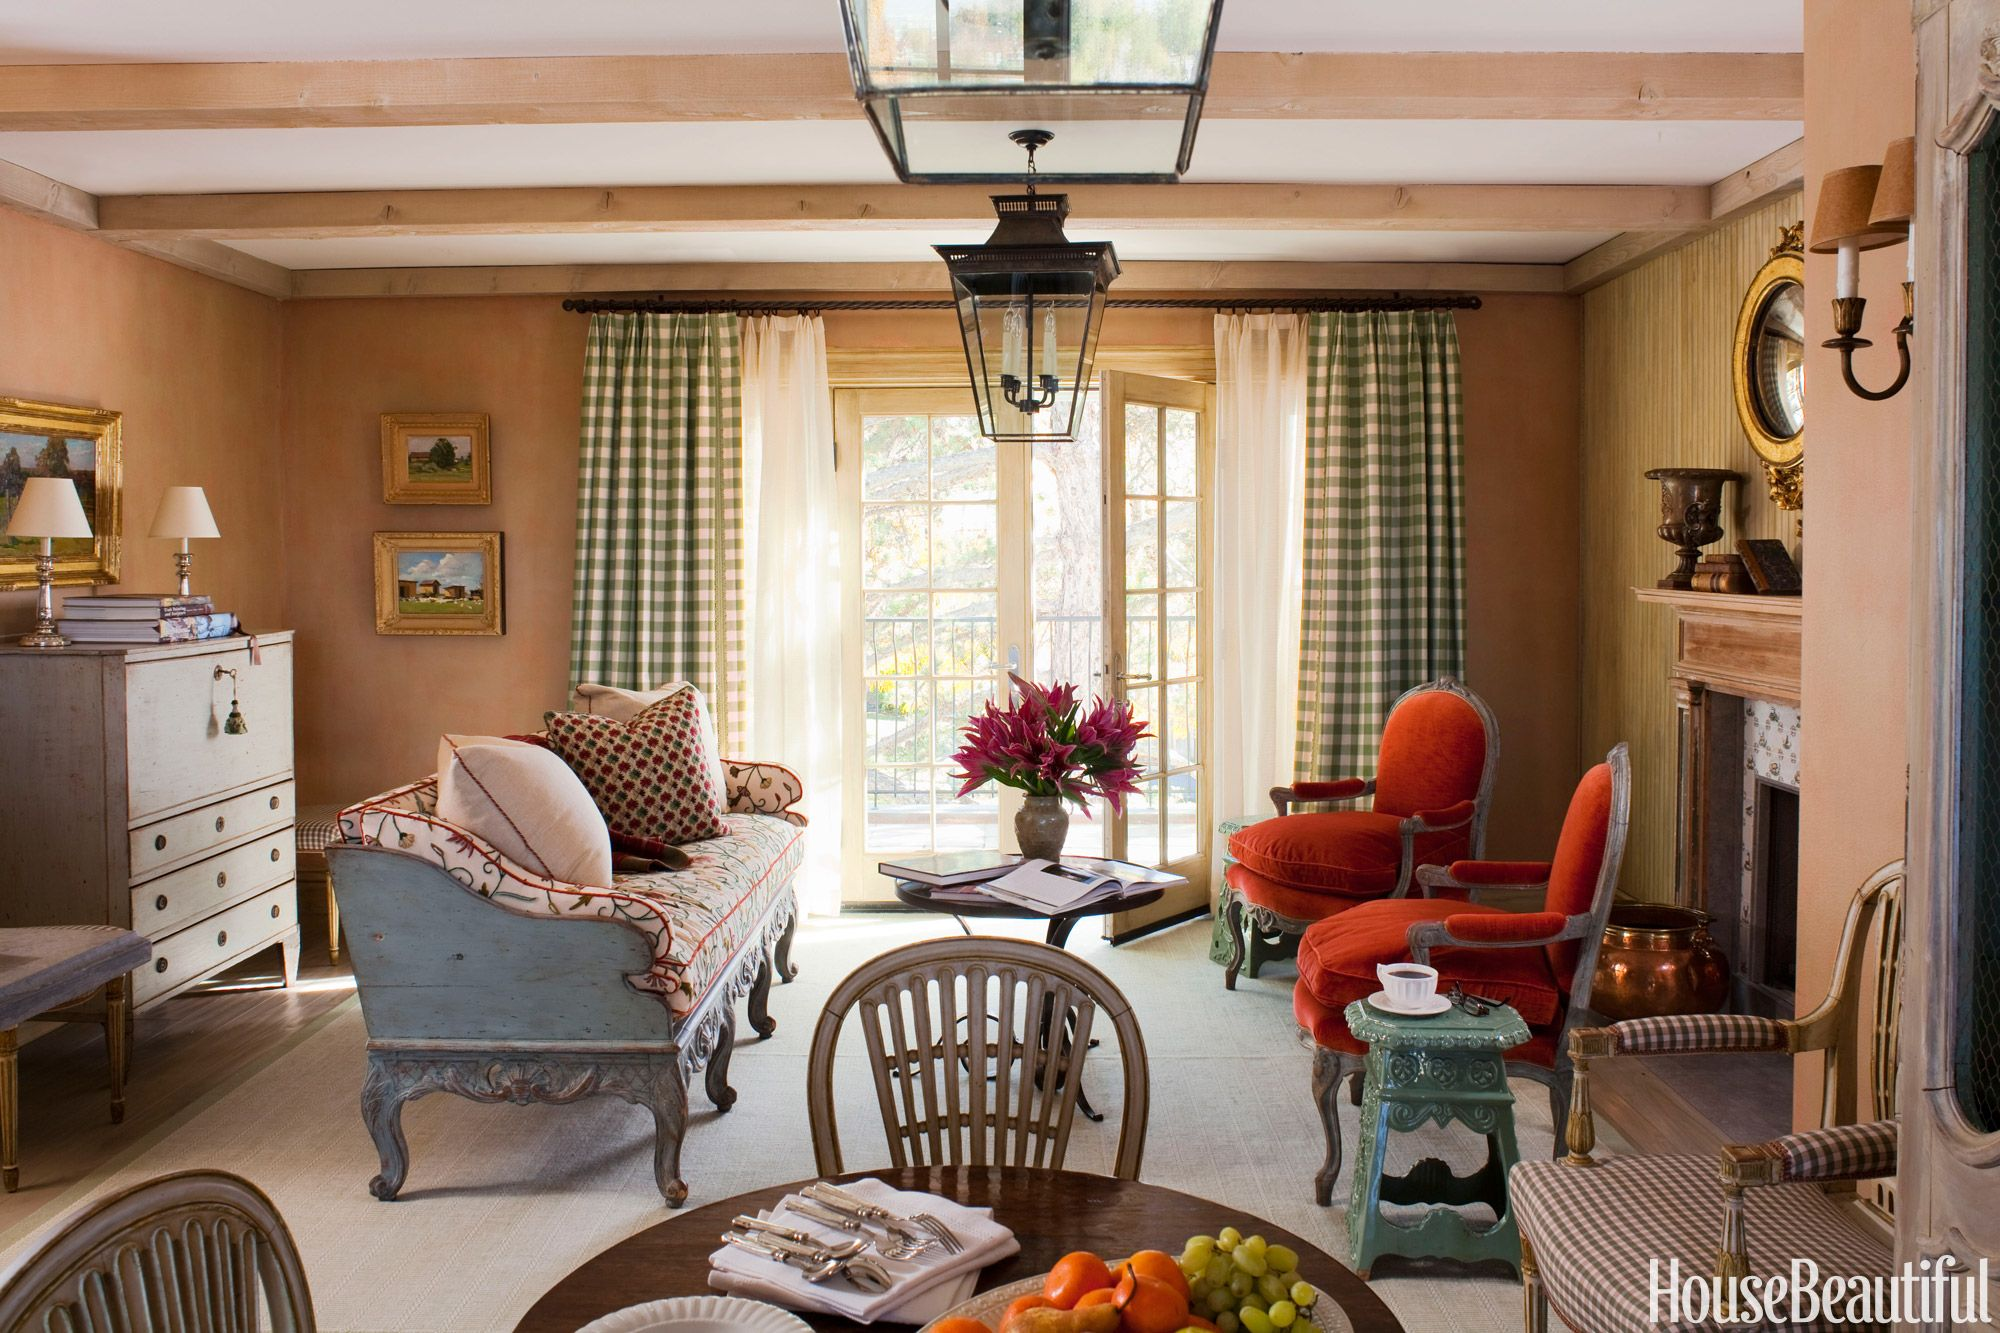 15 Best Small Living Room Ideas - How to Design a Small ... on Decorating Small Living Room  id=58071